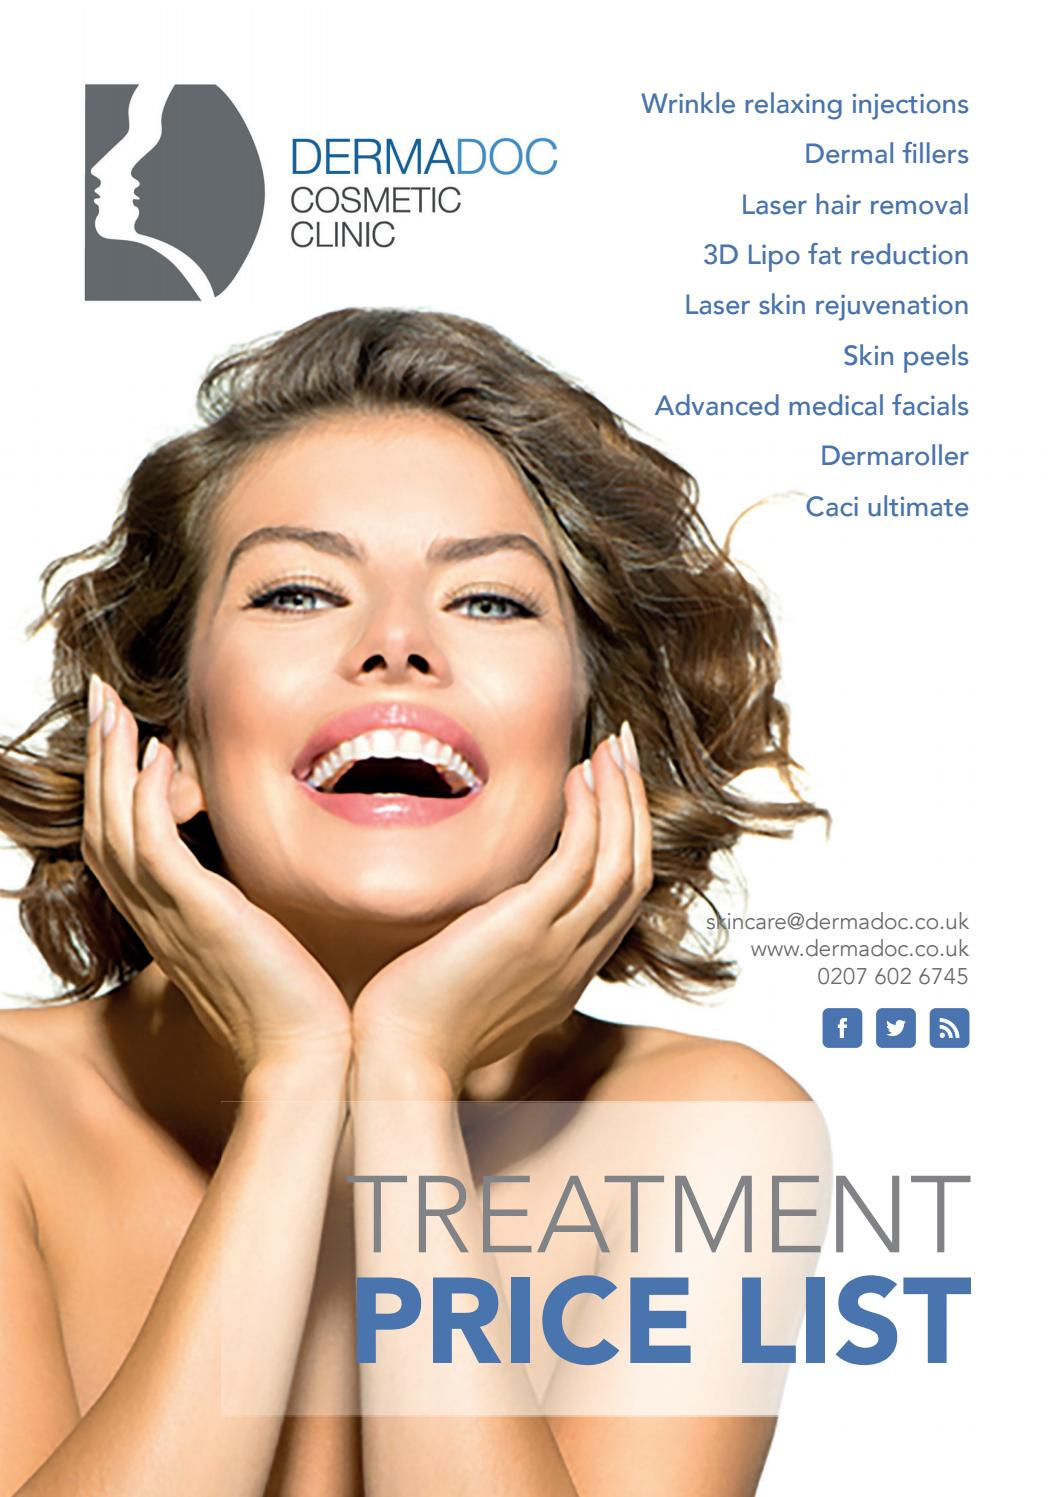 Treatment guide and Dermadoc Price List by dermadoc - issuu